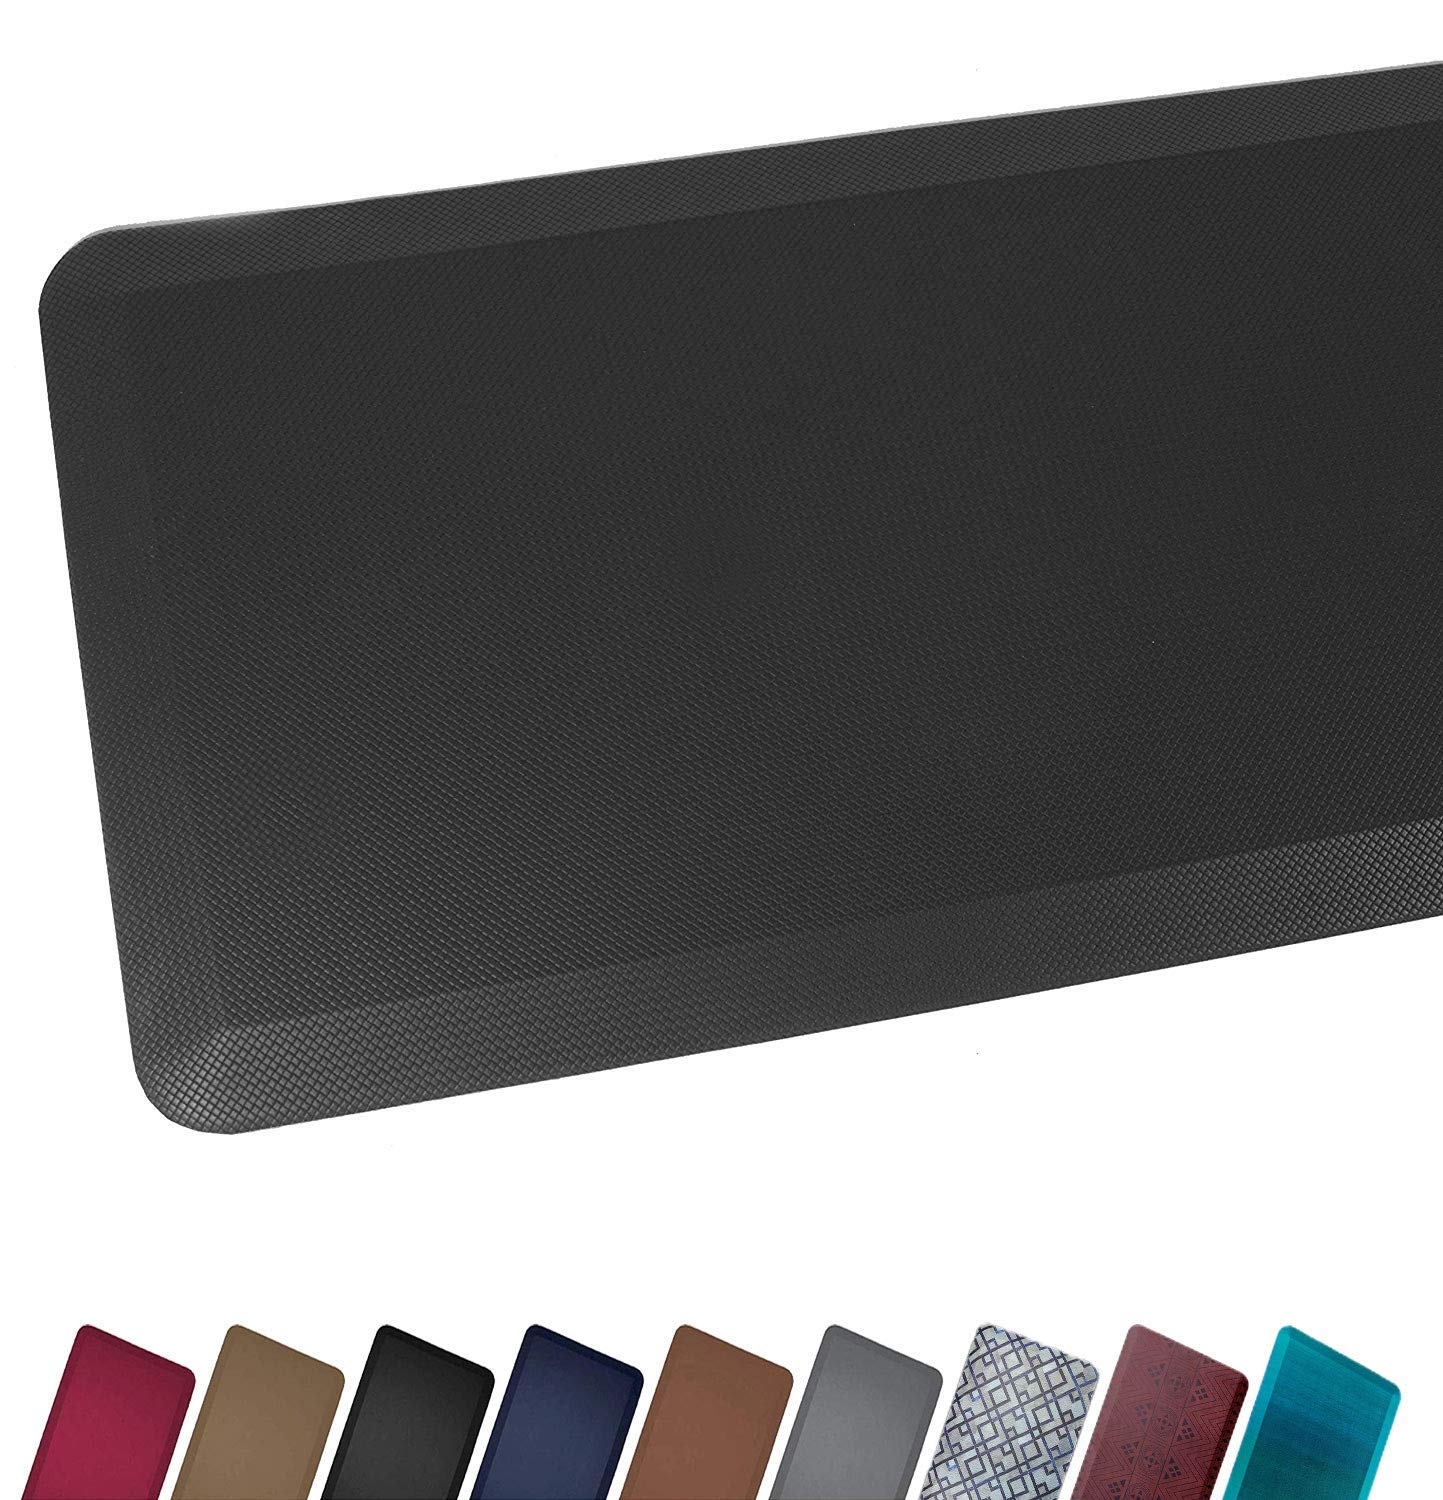 Anti Fatigue Comfort Floor Mat By Sky Mats -Commercial Grade Quality Perfect for Standup Desks, Kitchens, and Garages - Relieves Foot, Knee, and Back Pain (20x39 (10 Pack), Midnight Black) by Sky Solutions